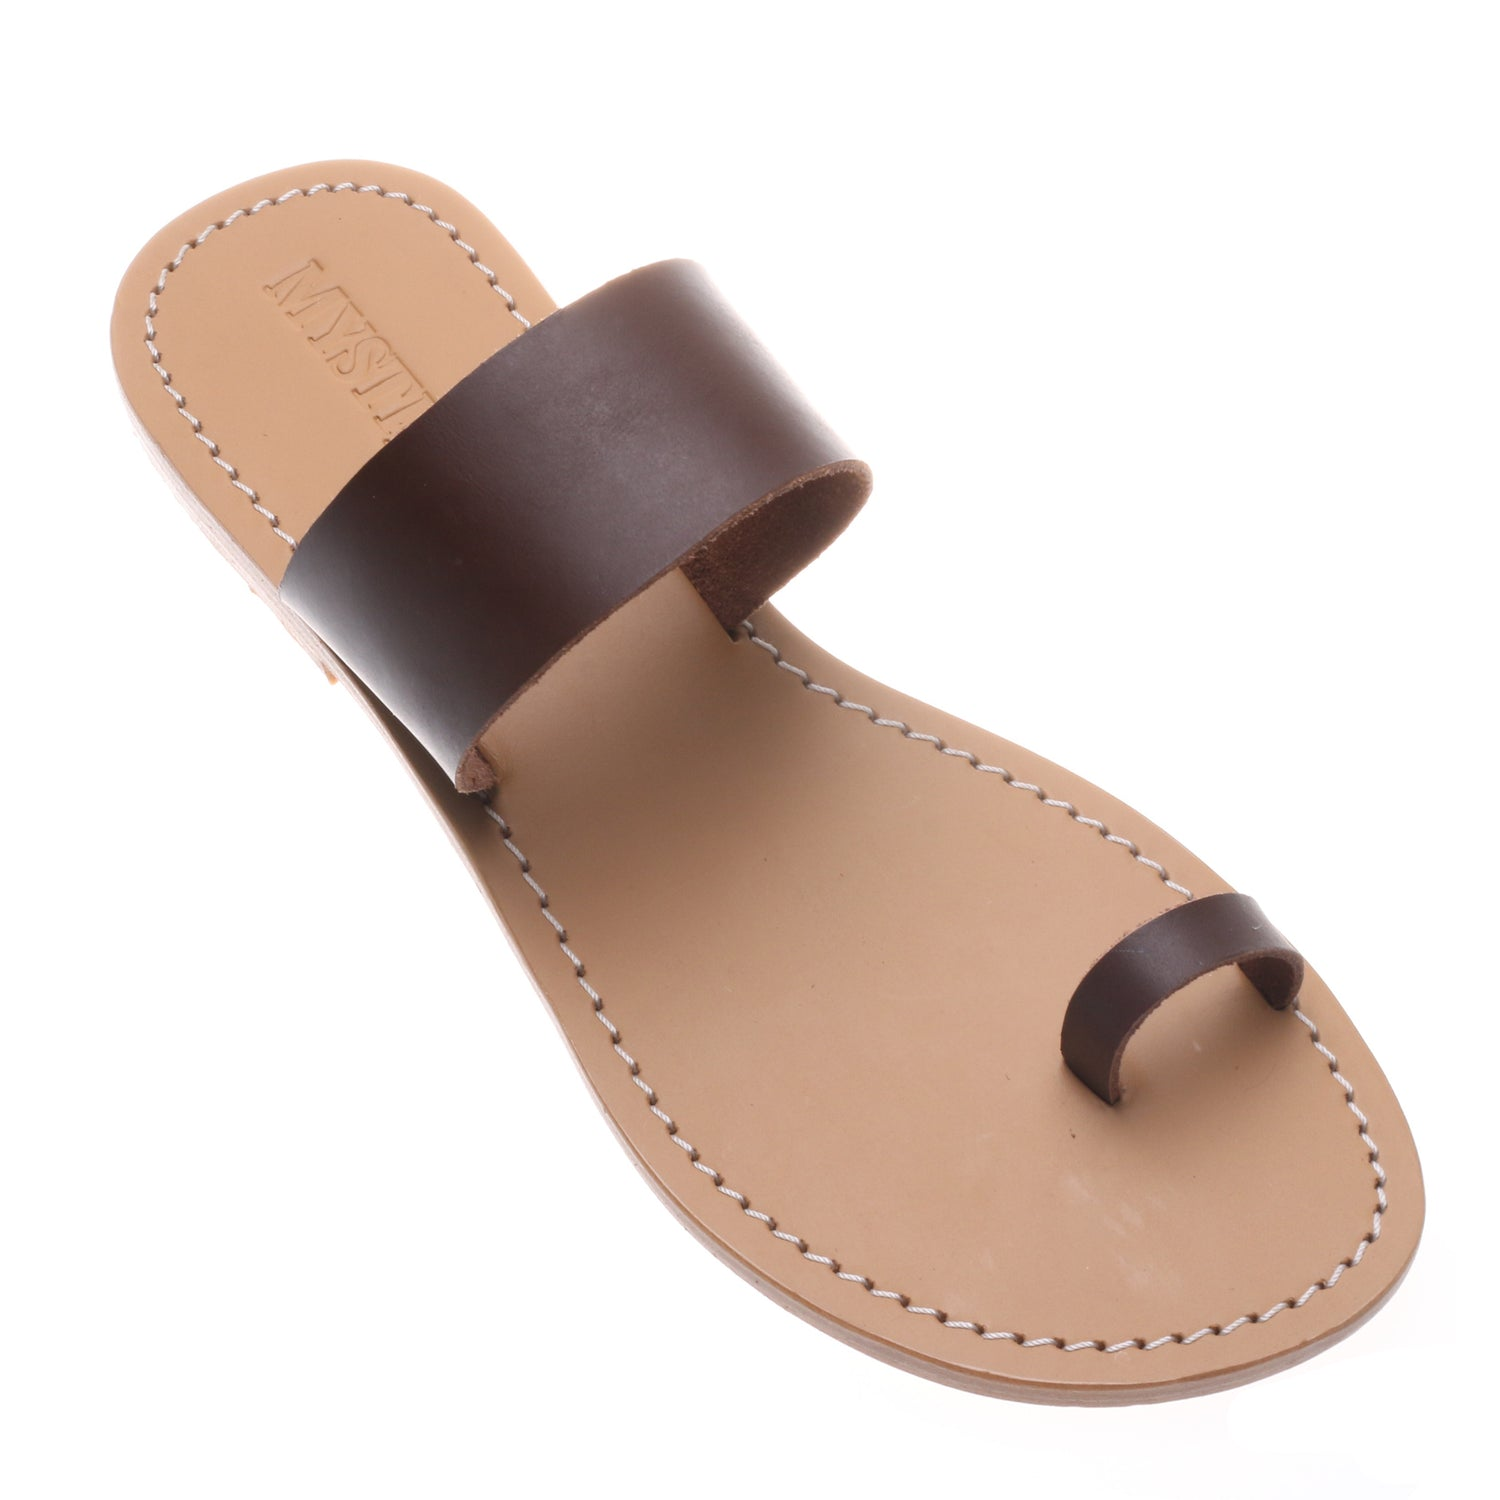 Anderson - Mystique Sandals